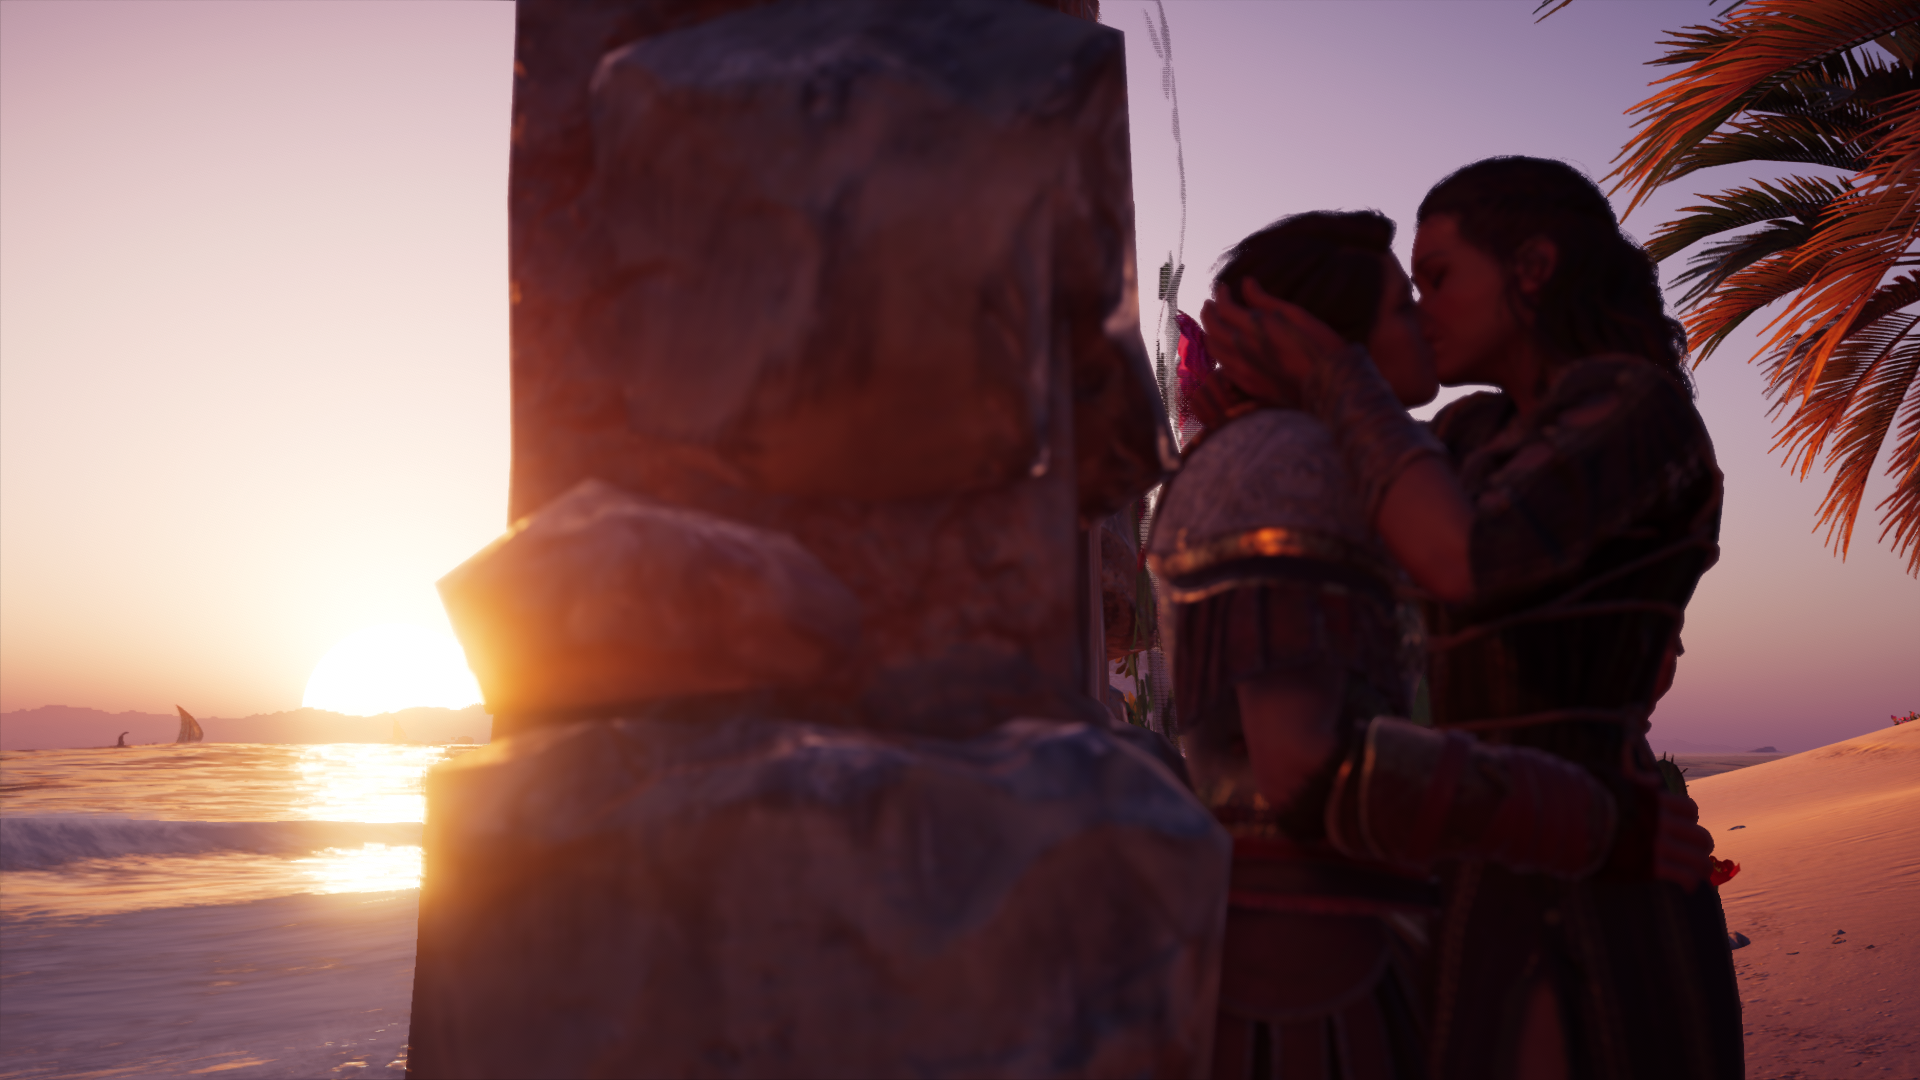 Assassin's Creed Odyssey's First Live Event Canceled